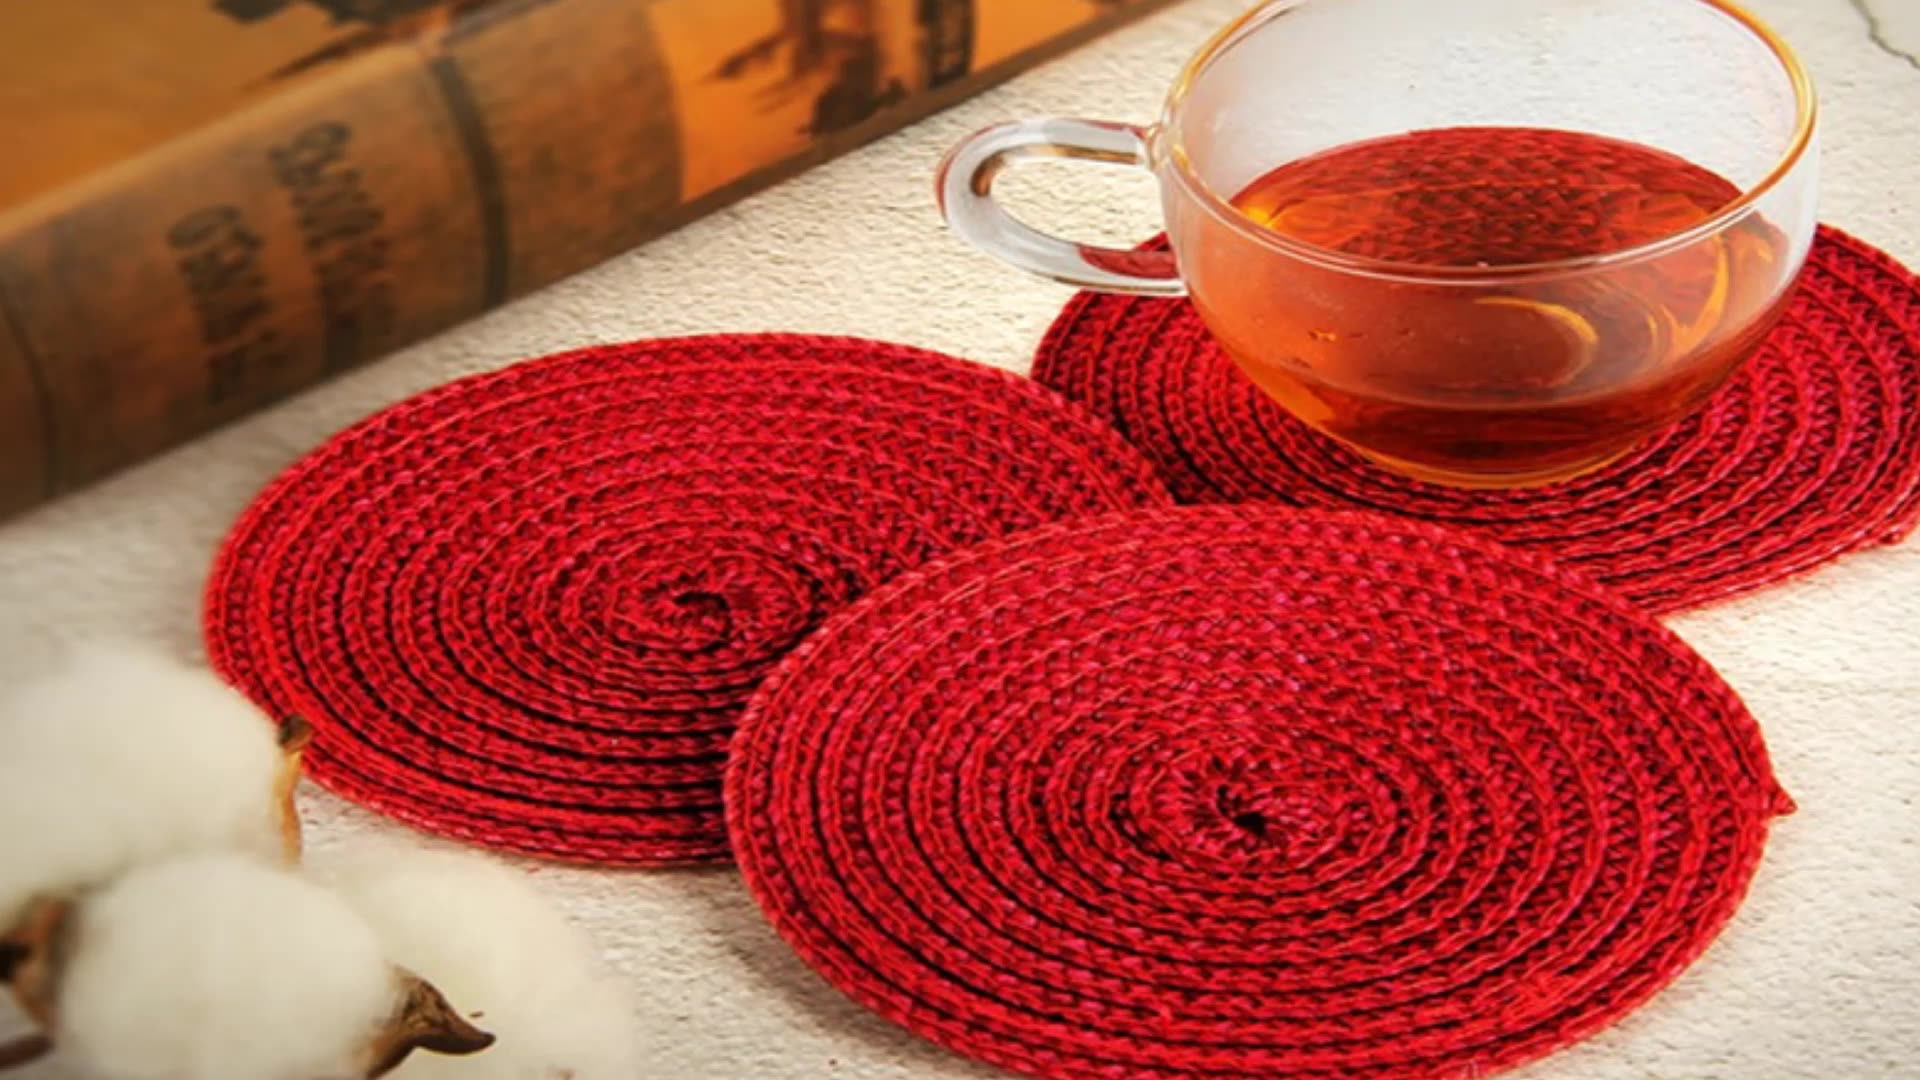 woven wine coaster  PP beer coasters 4x4inch